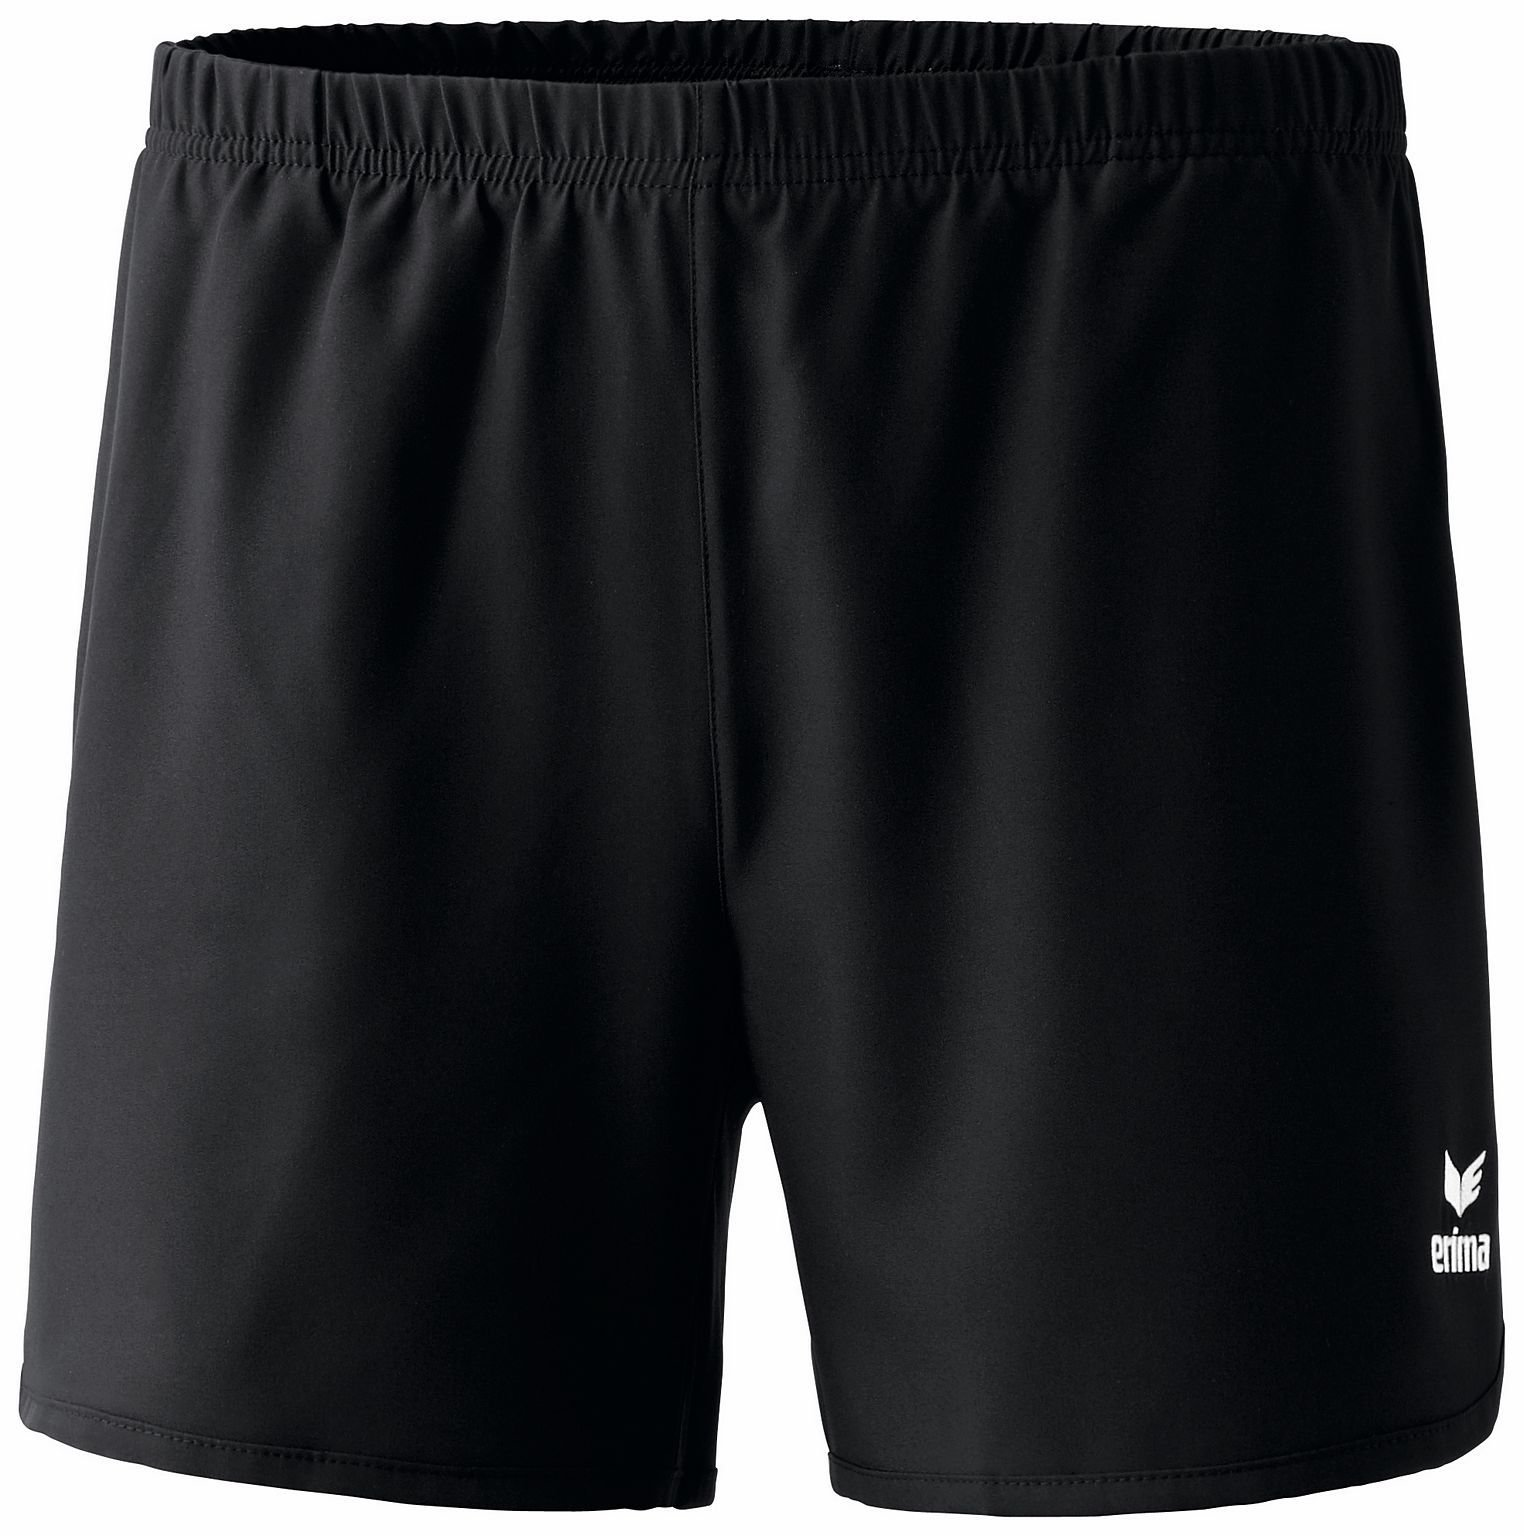 Tennisshort Damen d809210